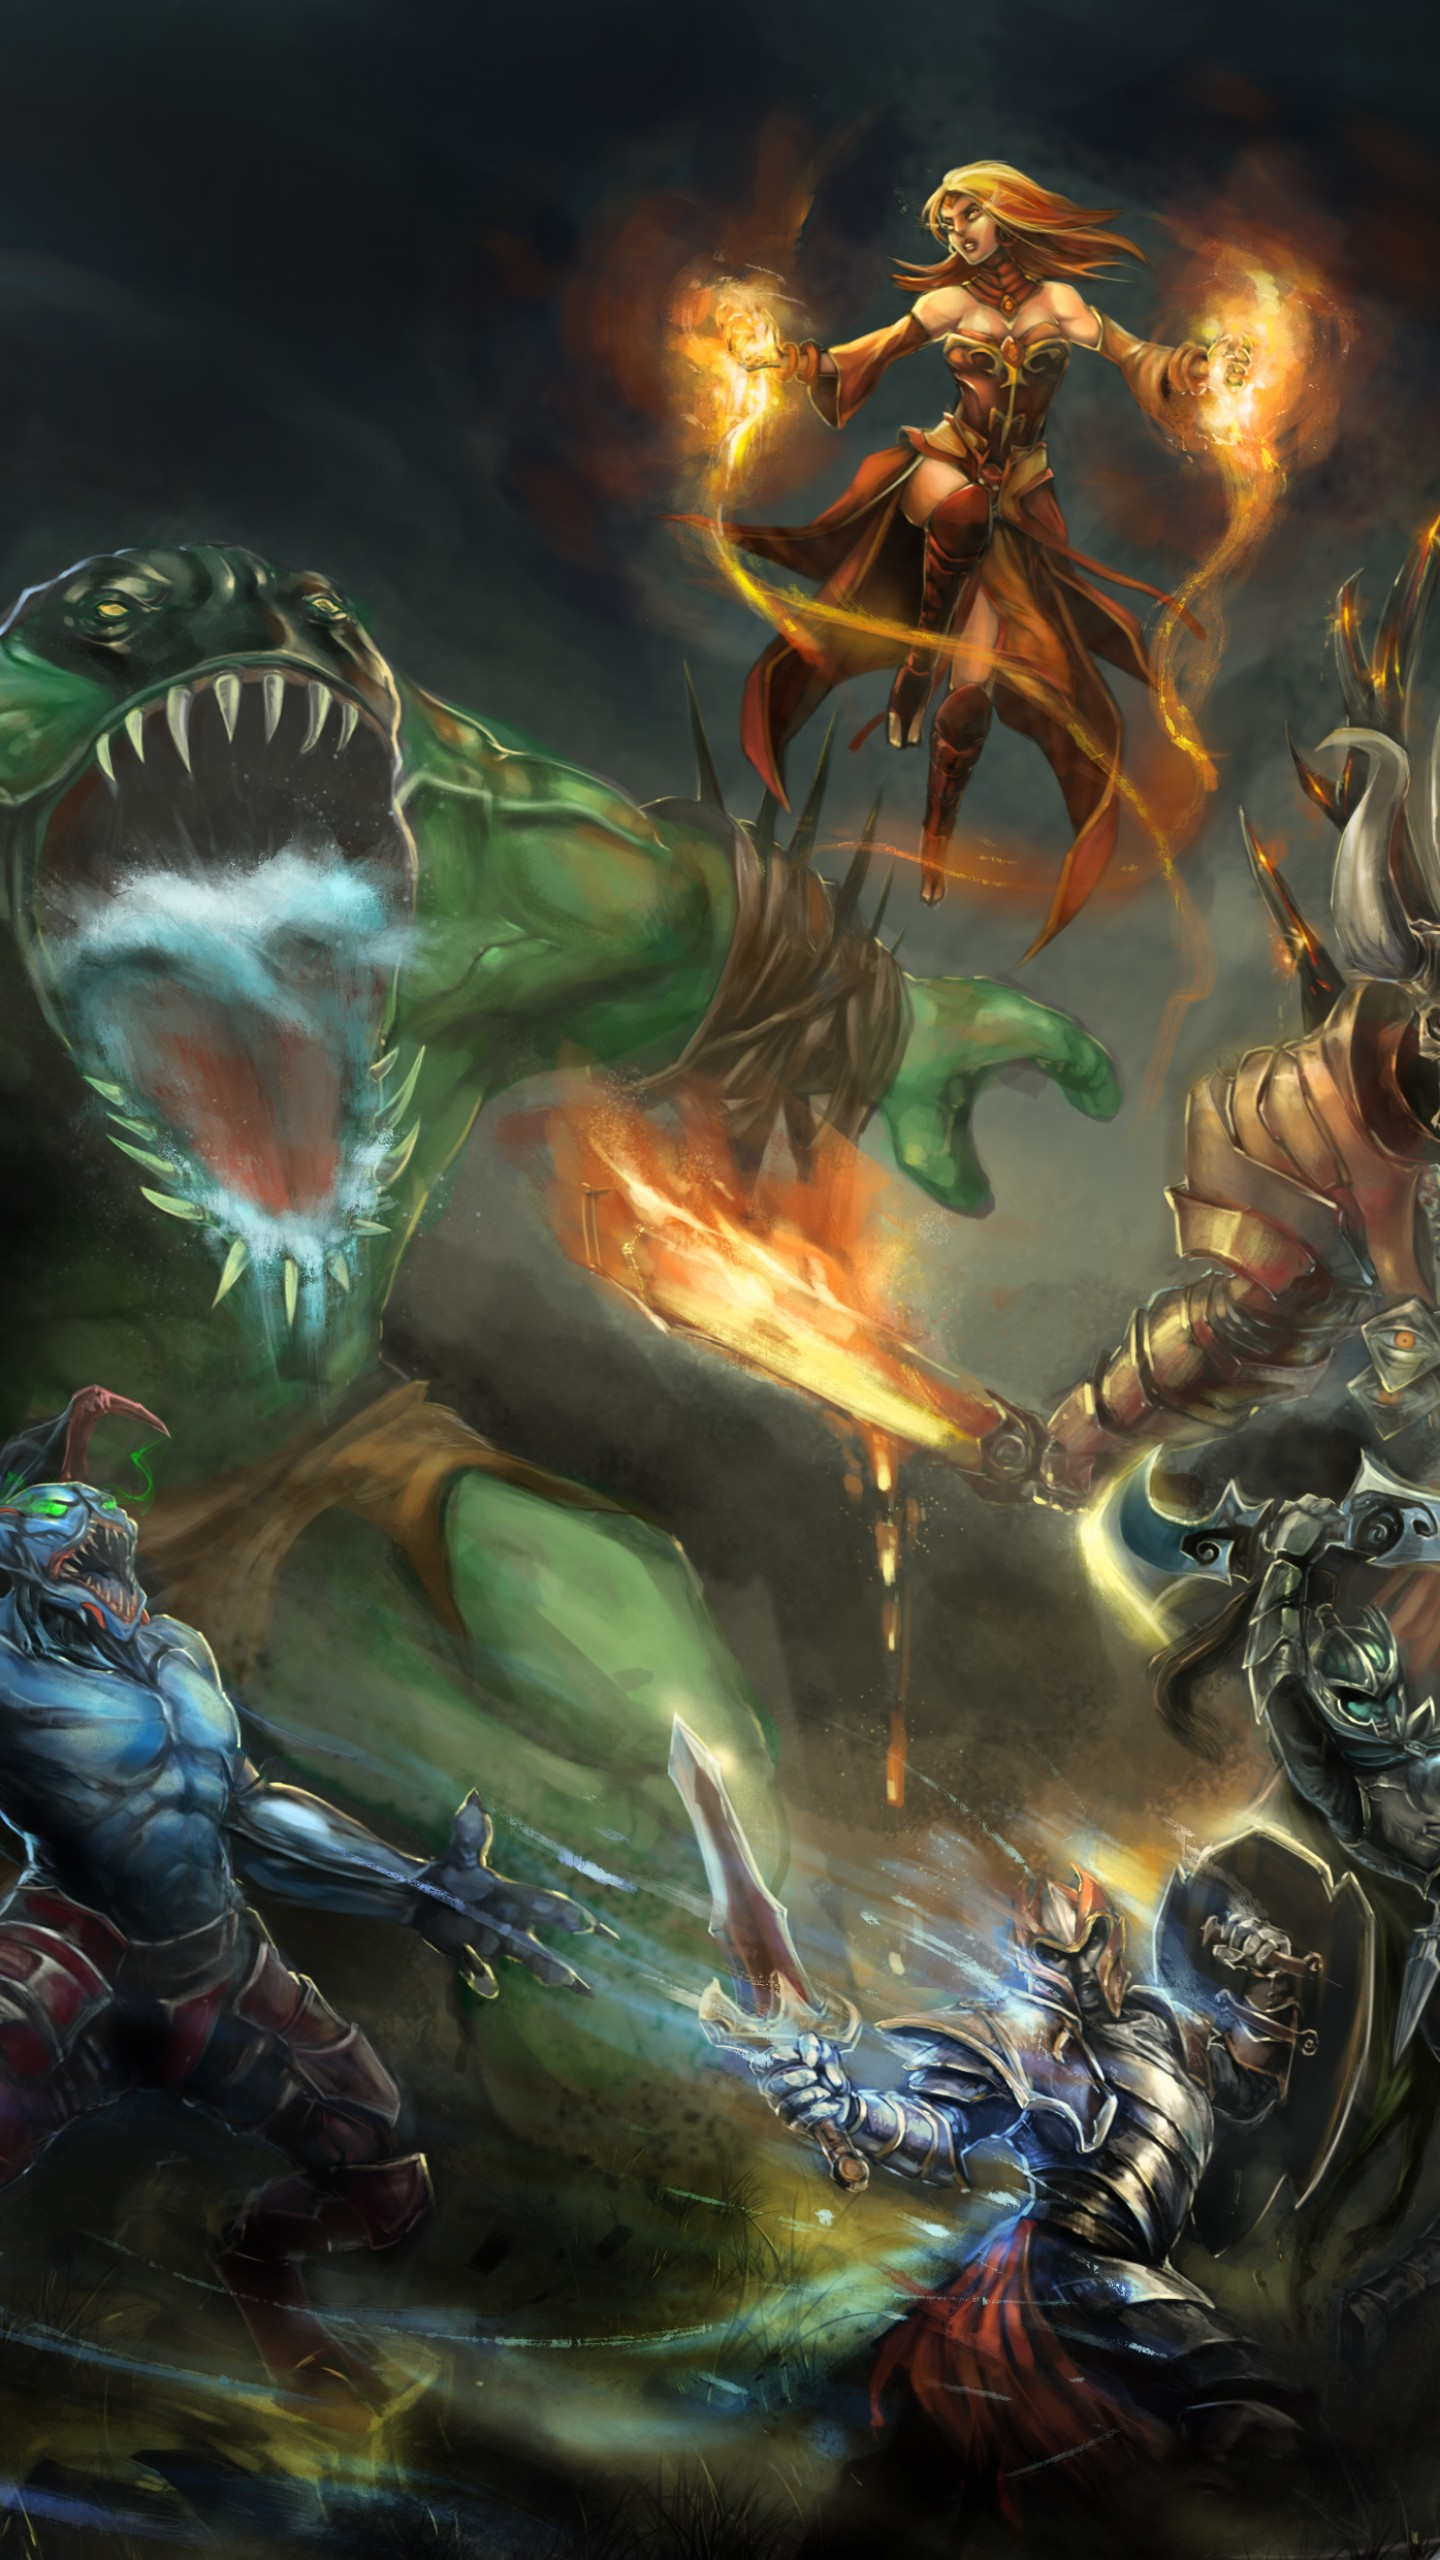 fire in the sky_Wallpaper Dota 2, game, characters, hero, monster, fantasy, art, fire, ice, Magic ...